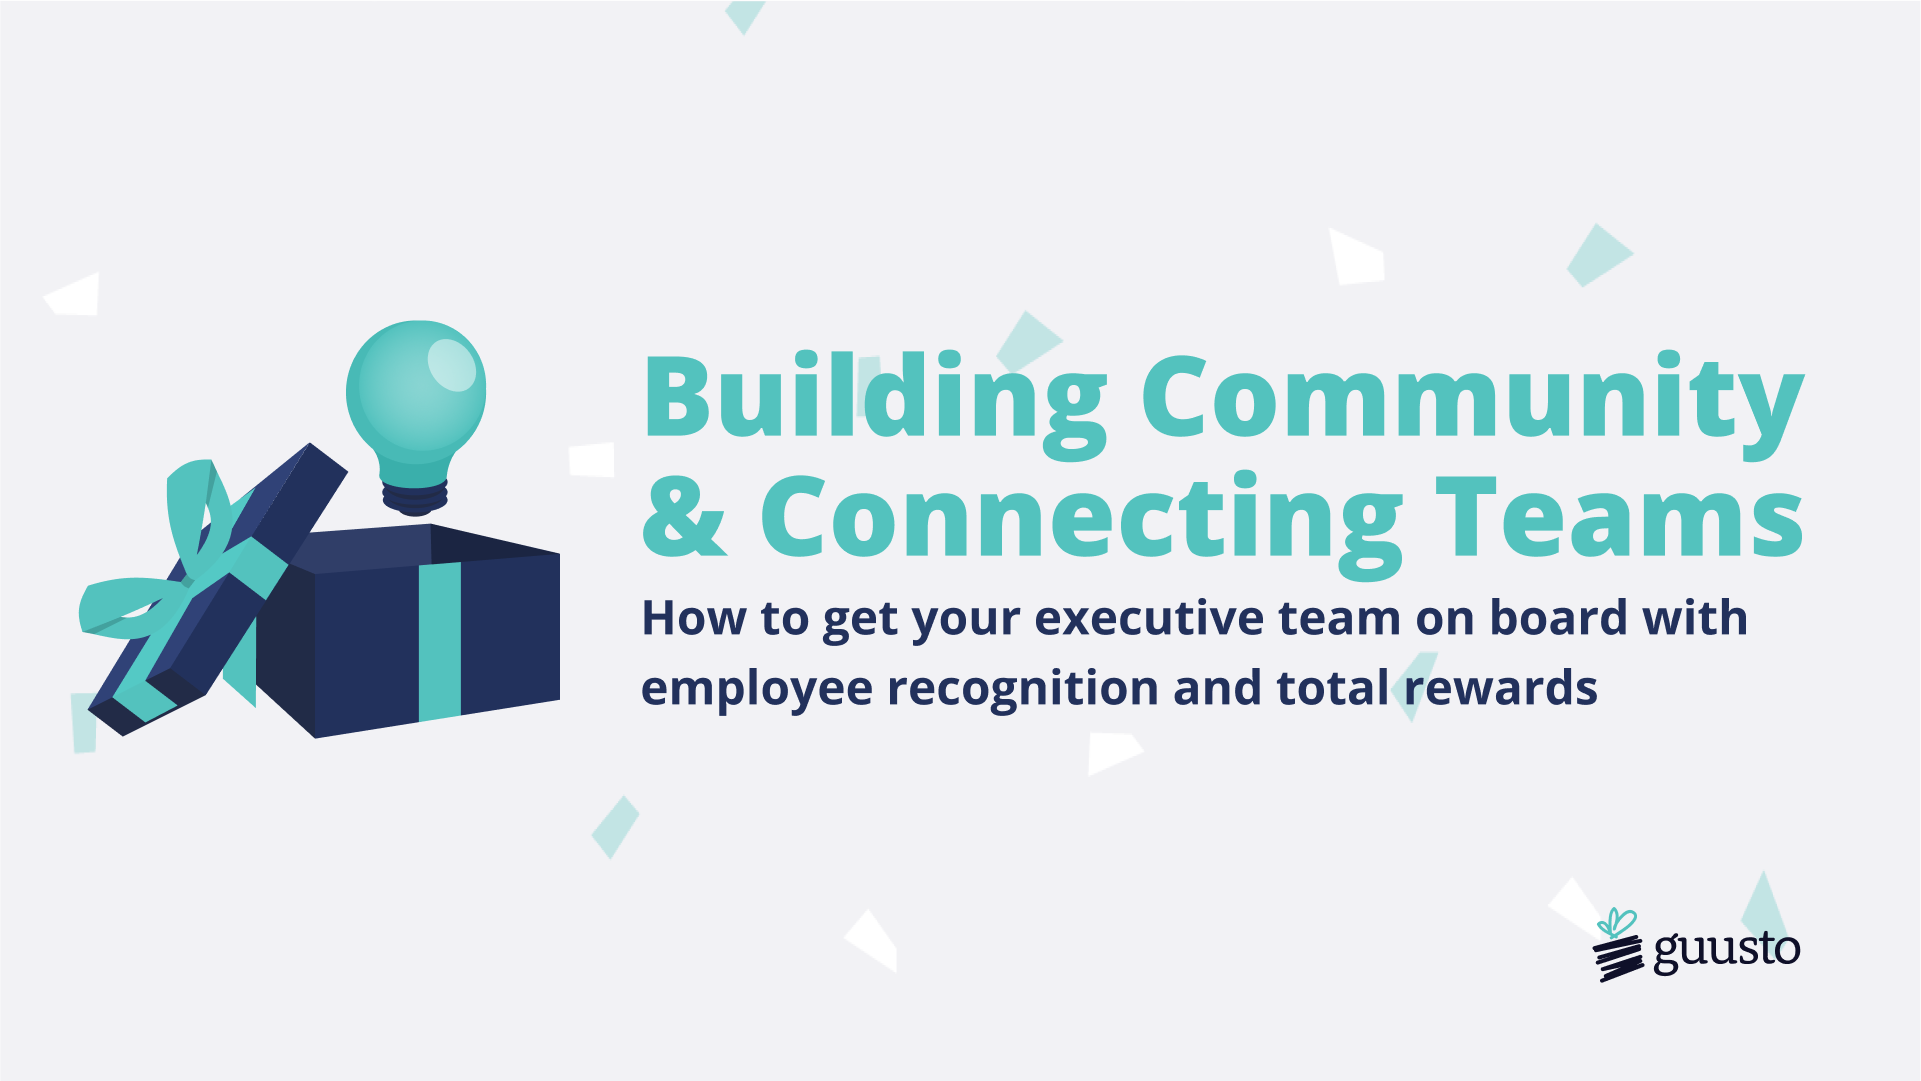 Building Community and Connecting Teams